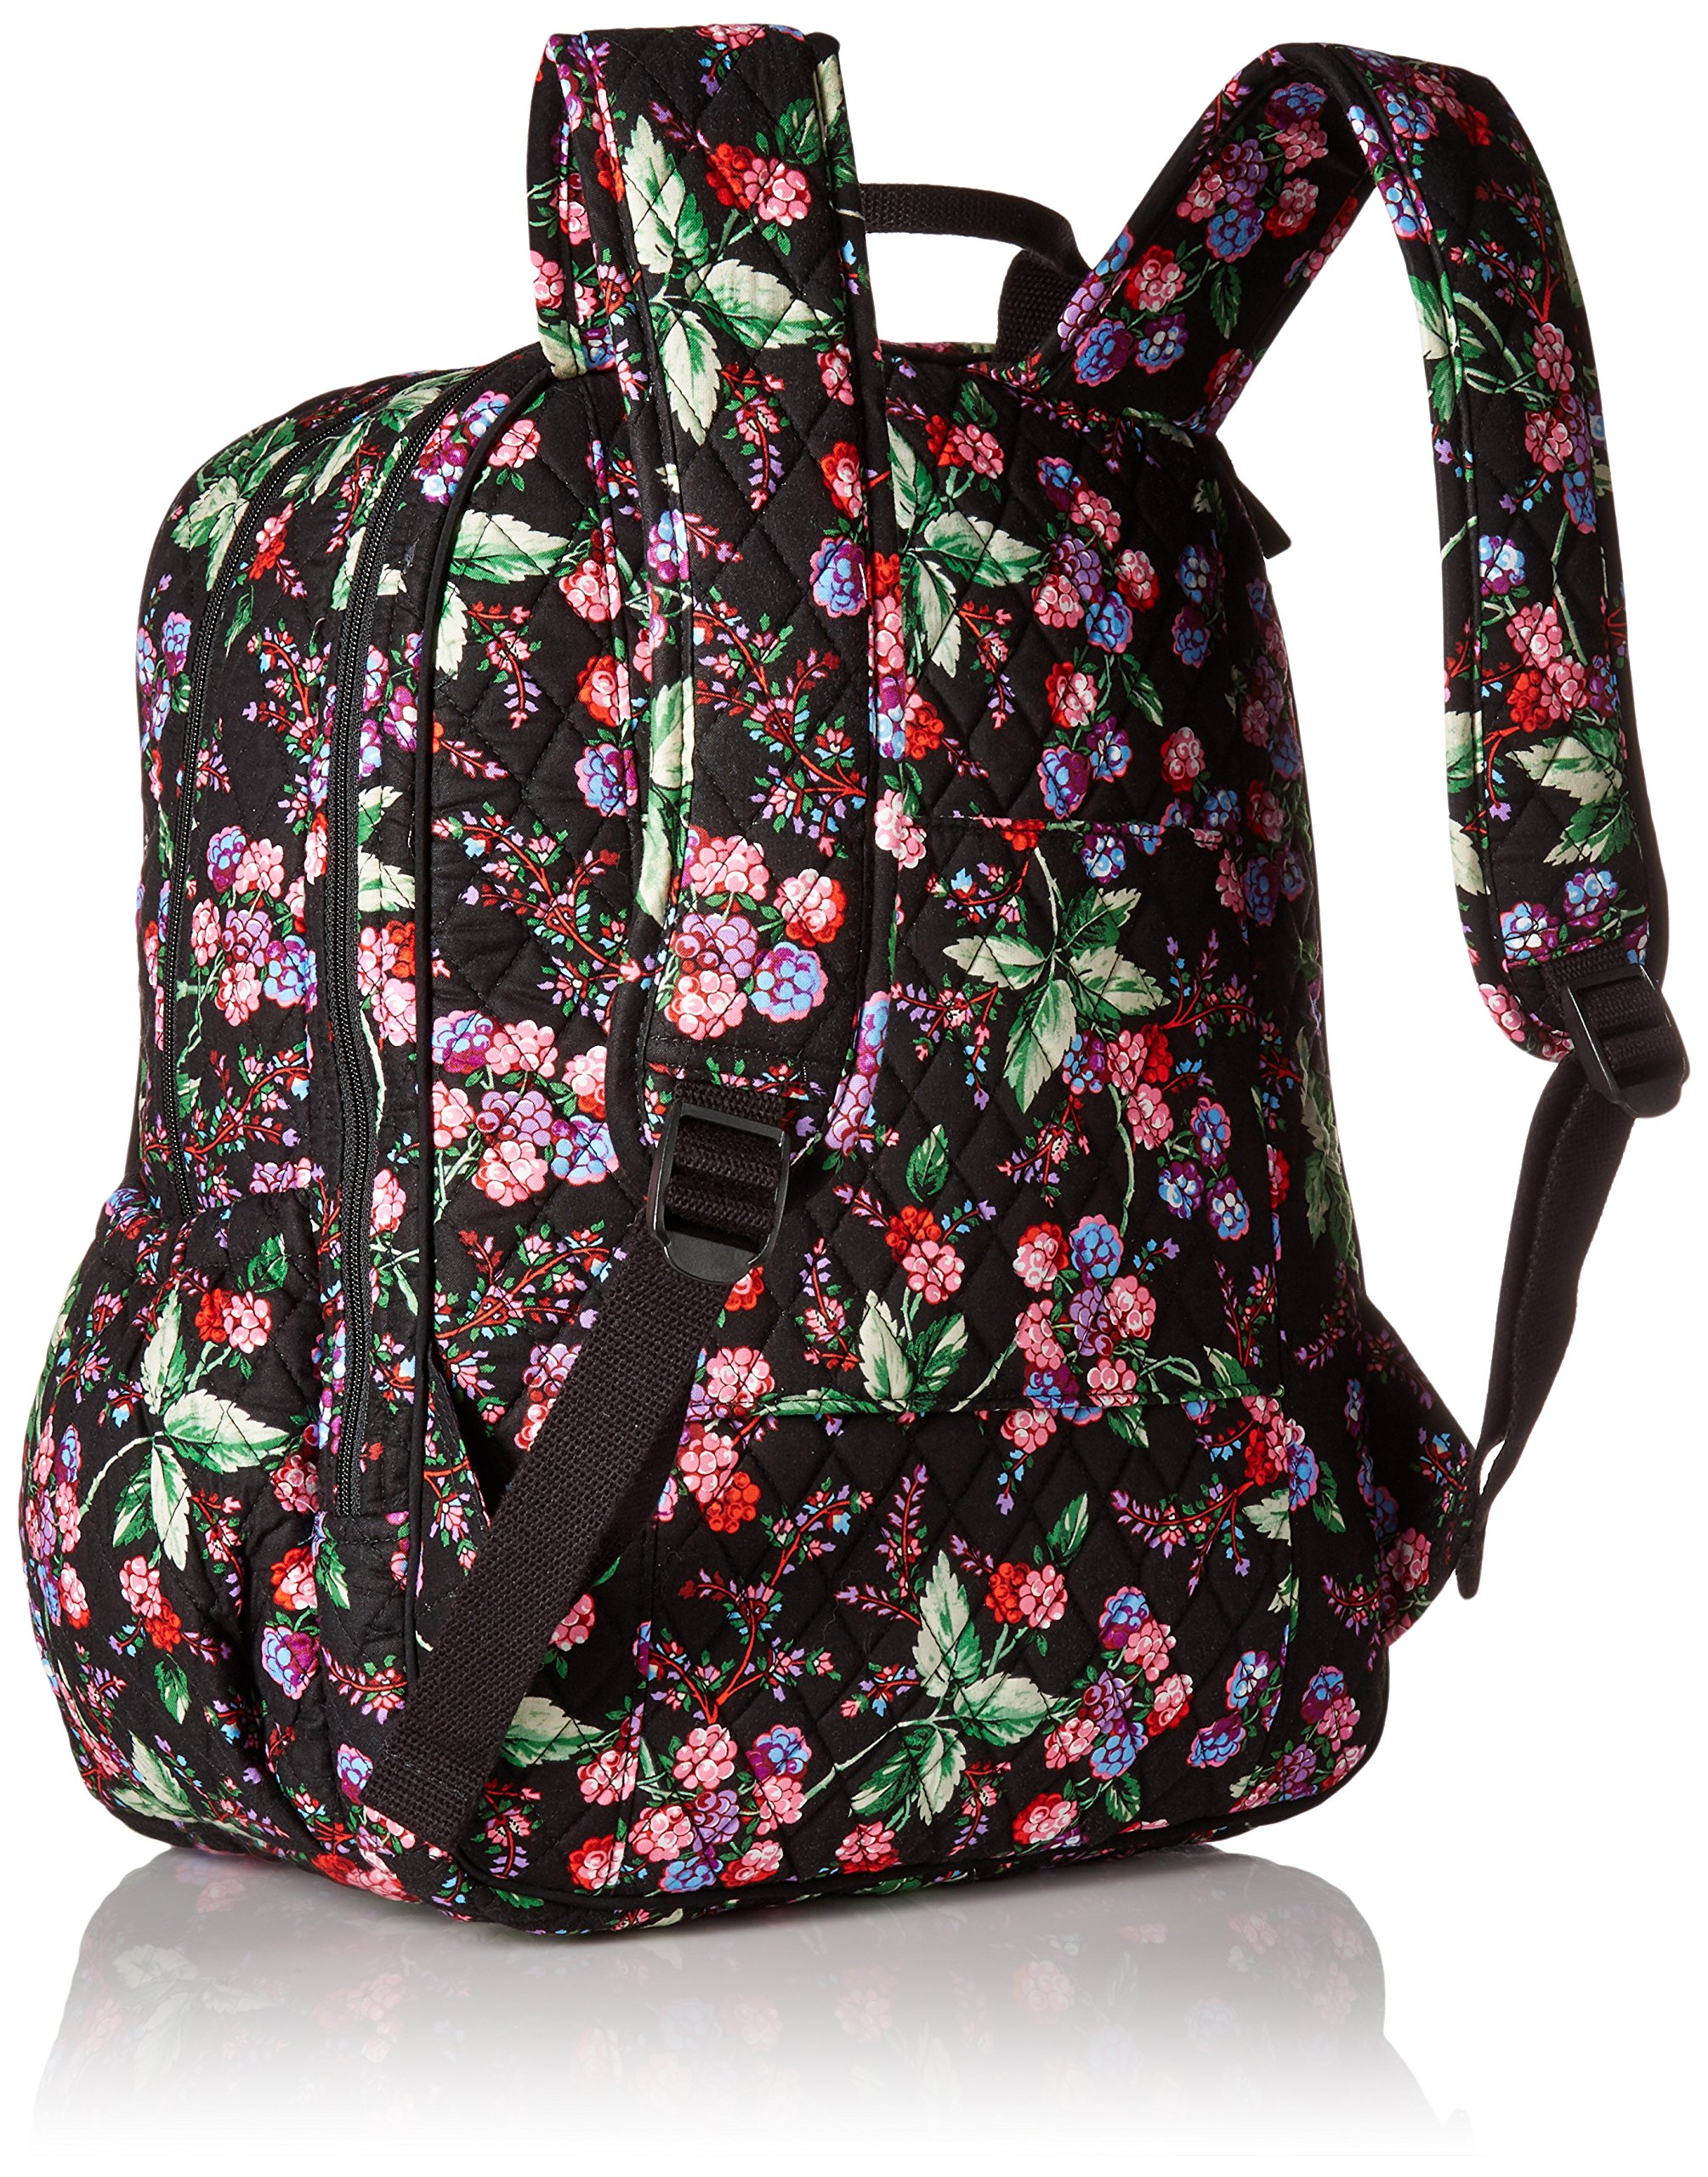 Vera Bradley Women's Campus Tech Backpack-Signature, Winter Berry by Vera Bradley (Image #2)